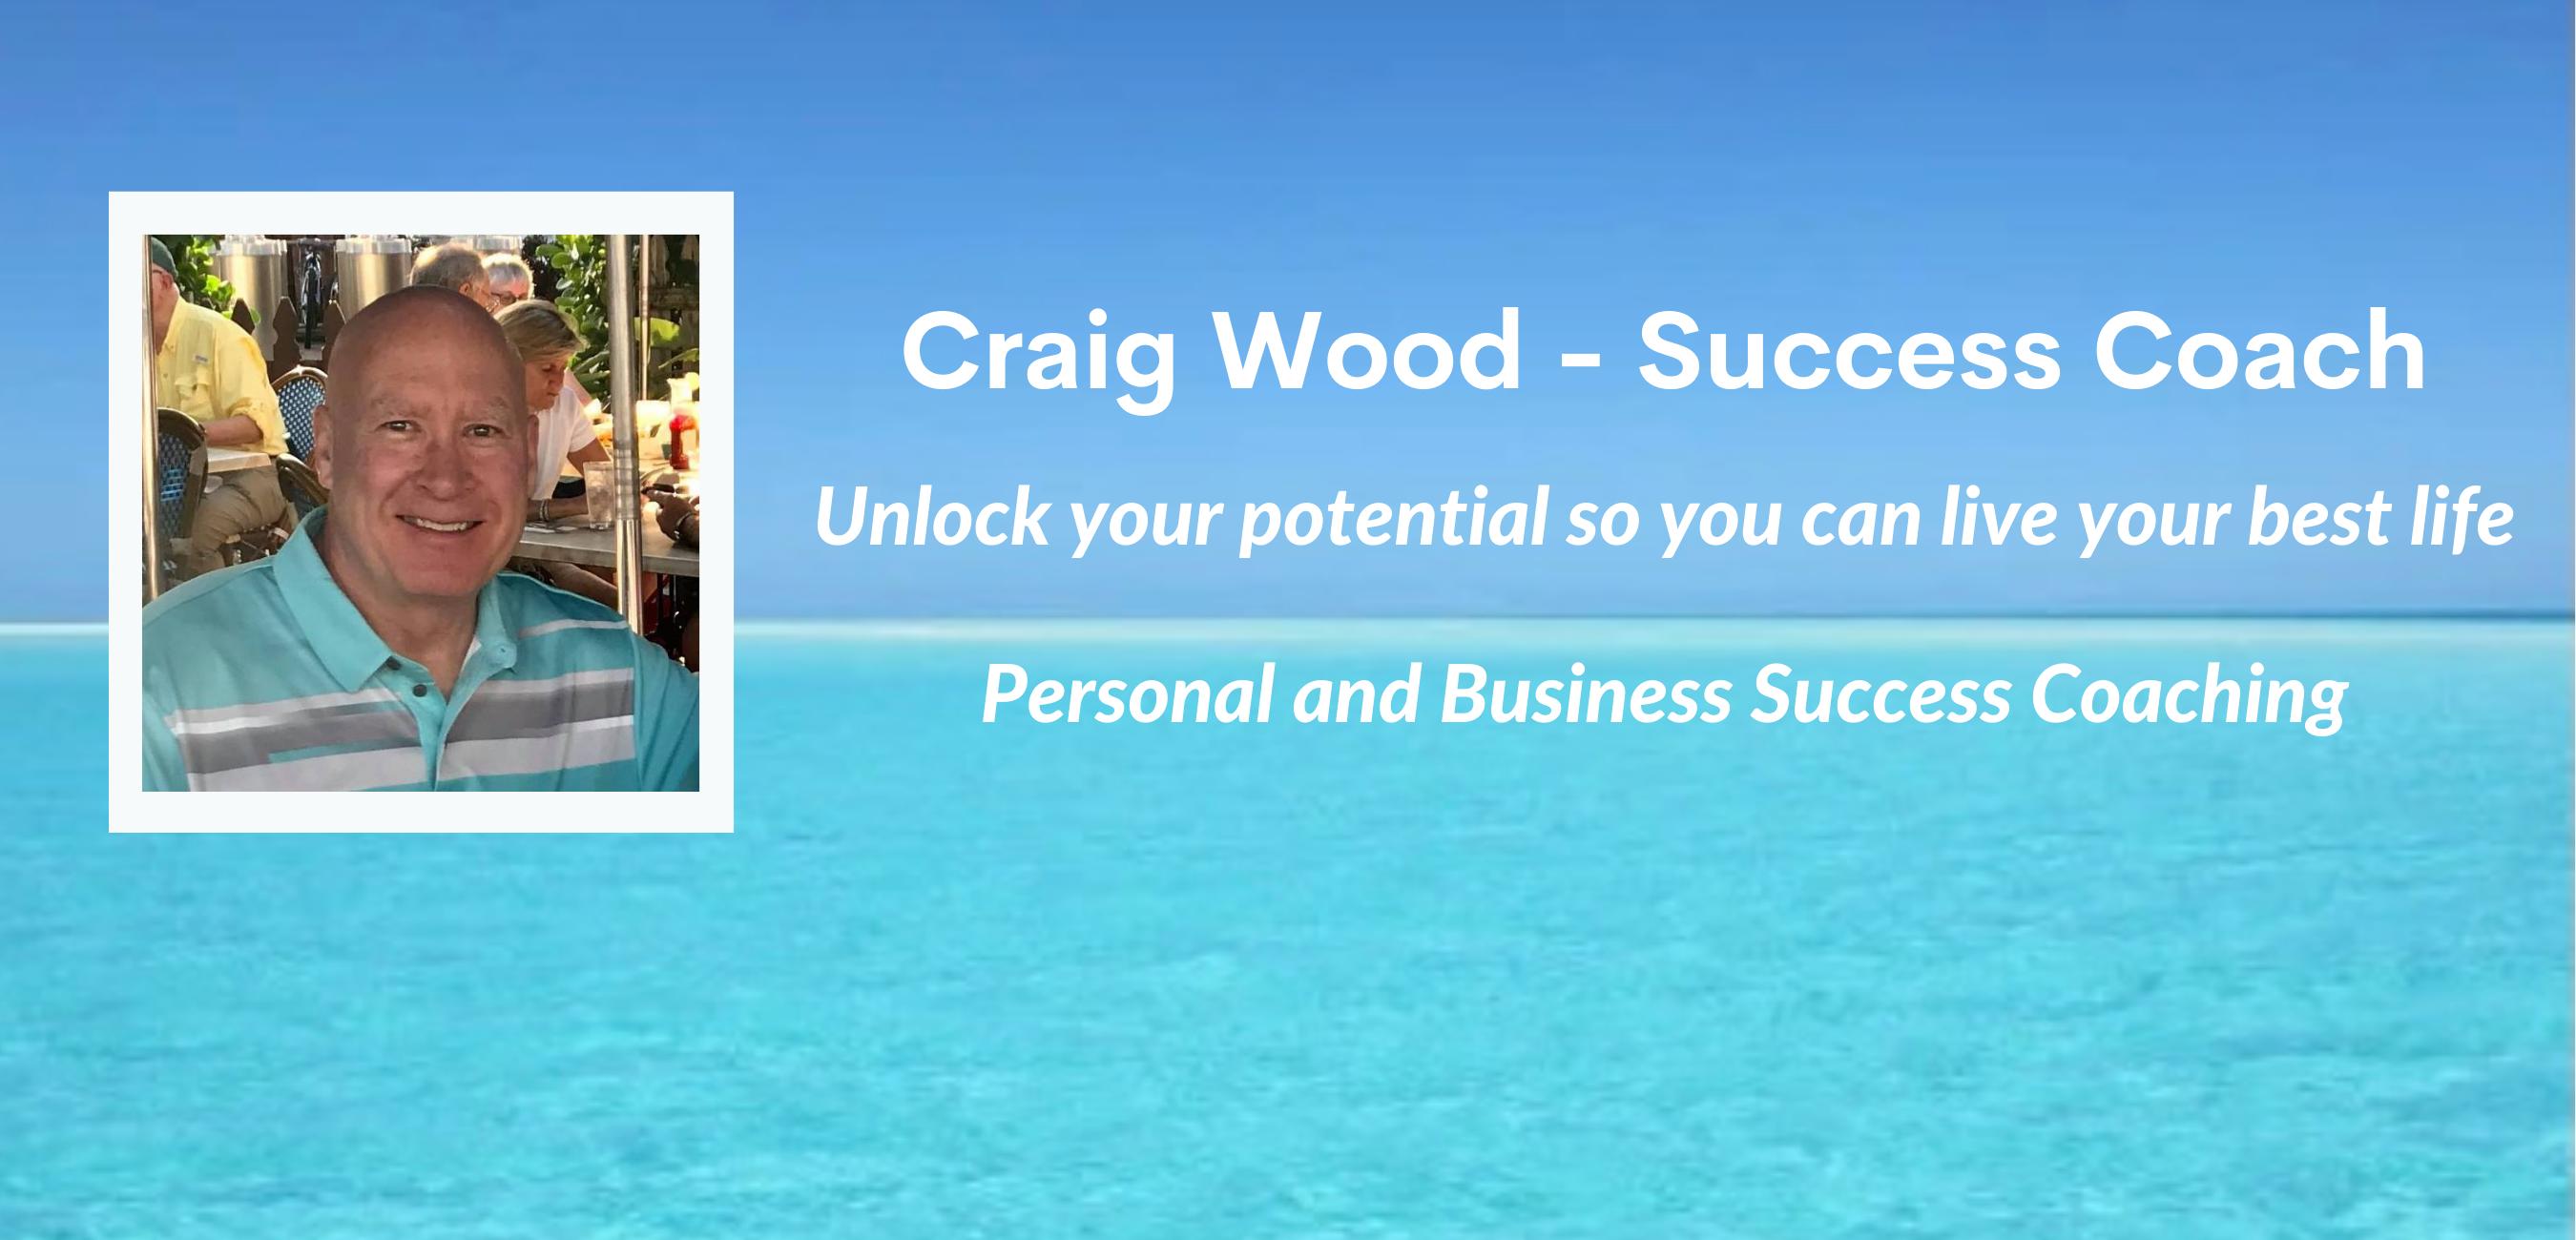 Craig Wood - Success Coach Unlock your potential so you can live your best life Personal and Business Success Coaching